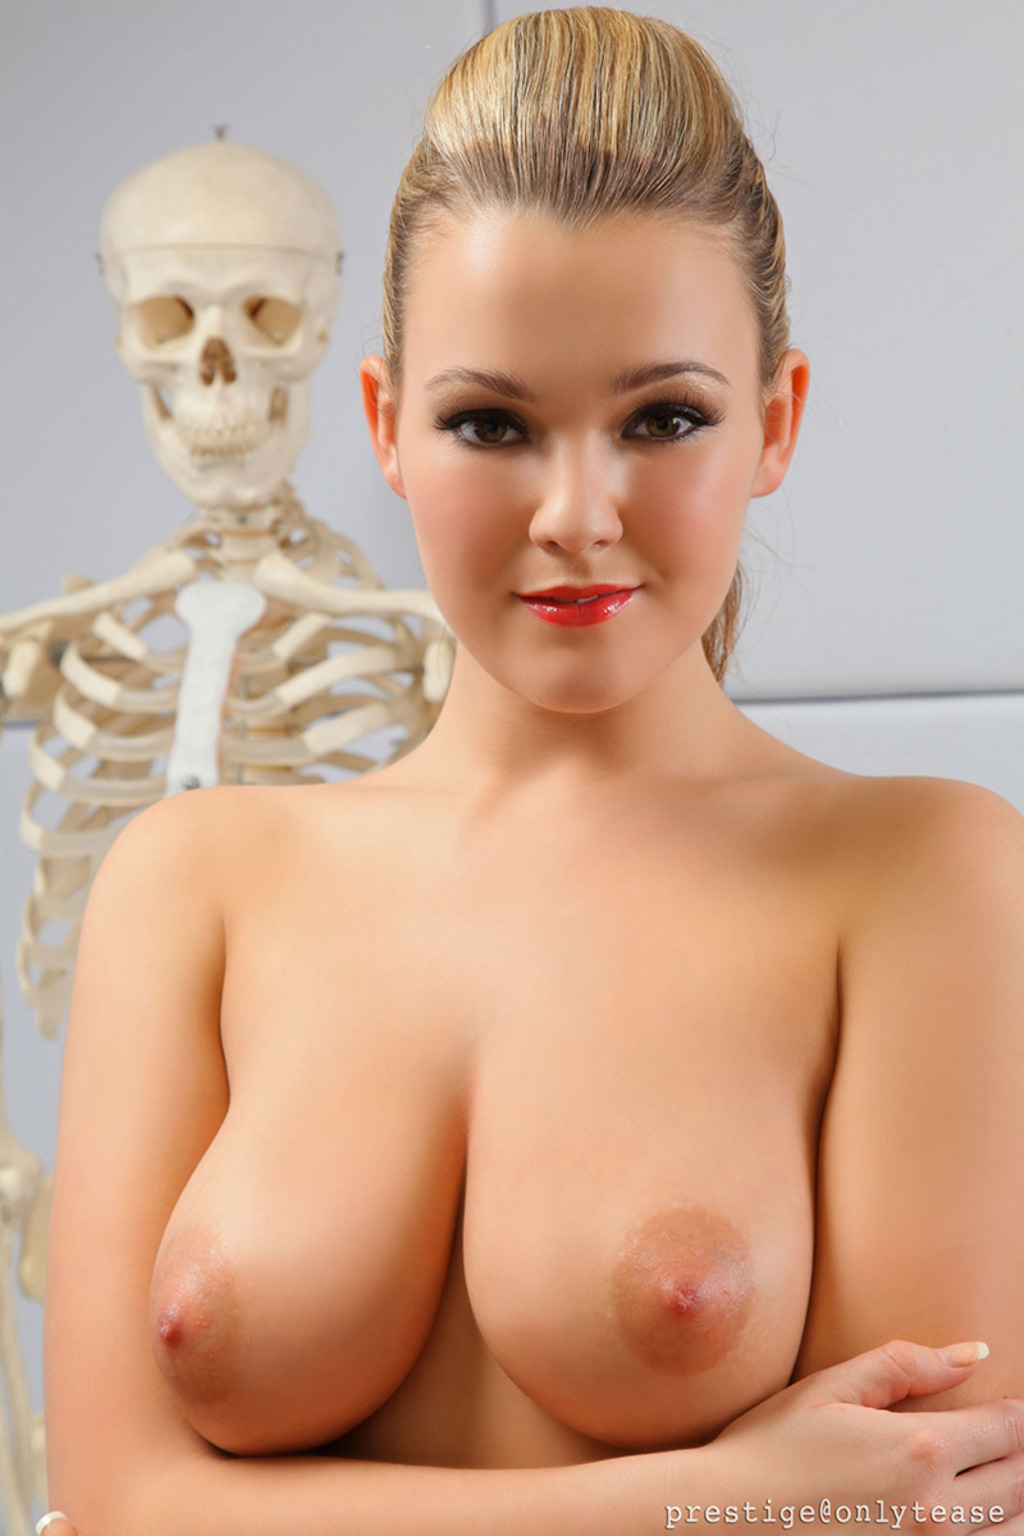 free sex video chat direct connecting no